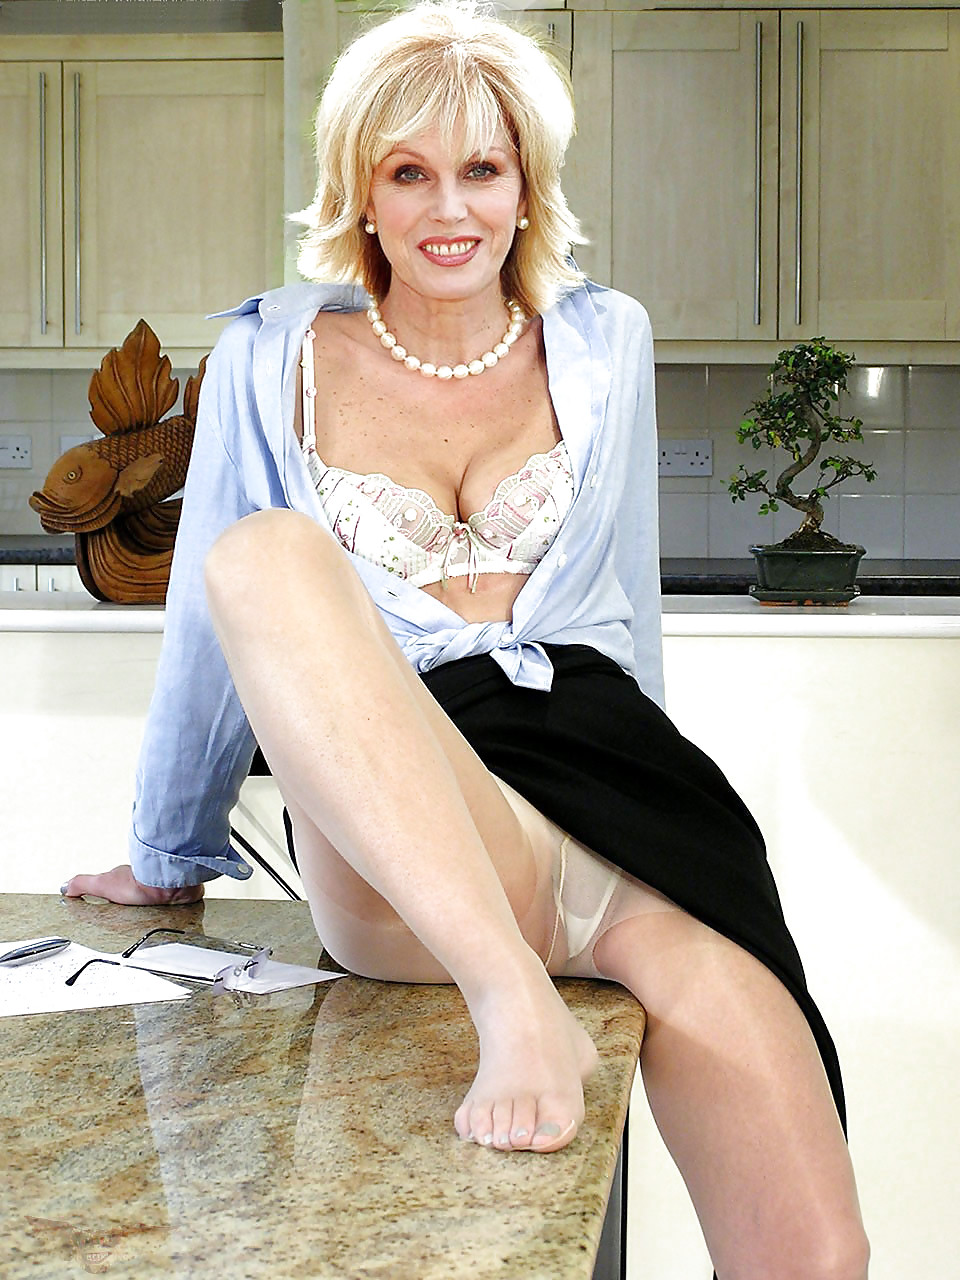 joanna-lumley-pantyhose-log-pic-sexy-gallery-dadd-fuck-girls-little